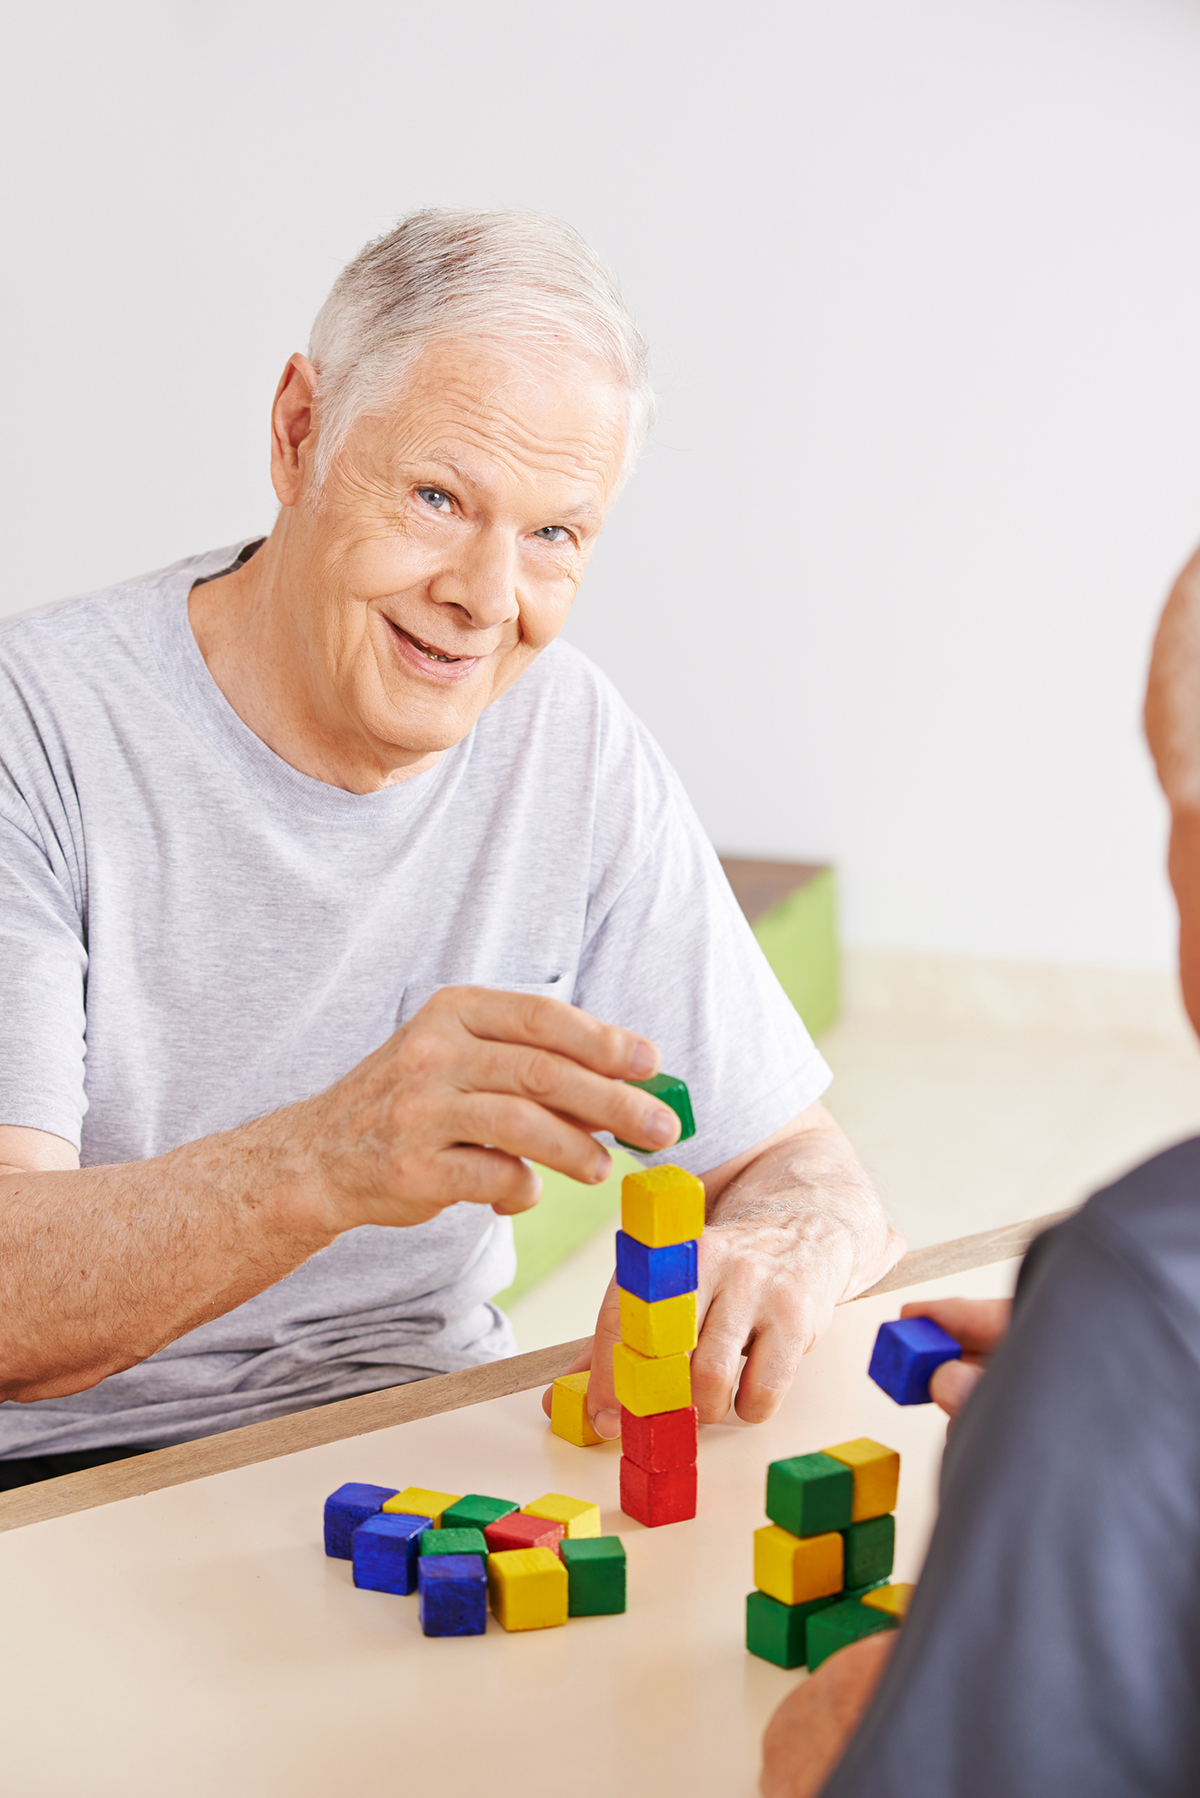 older adults with severe dementia, ageing population